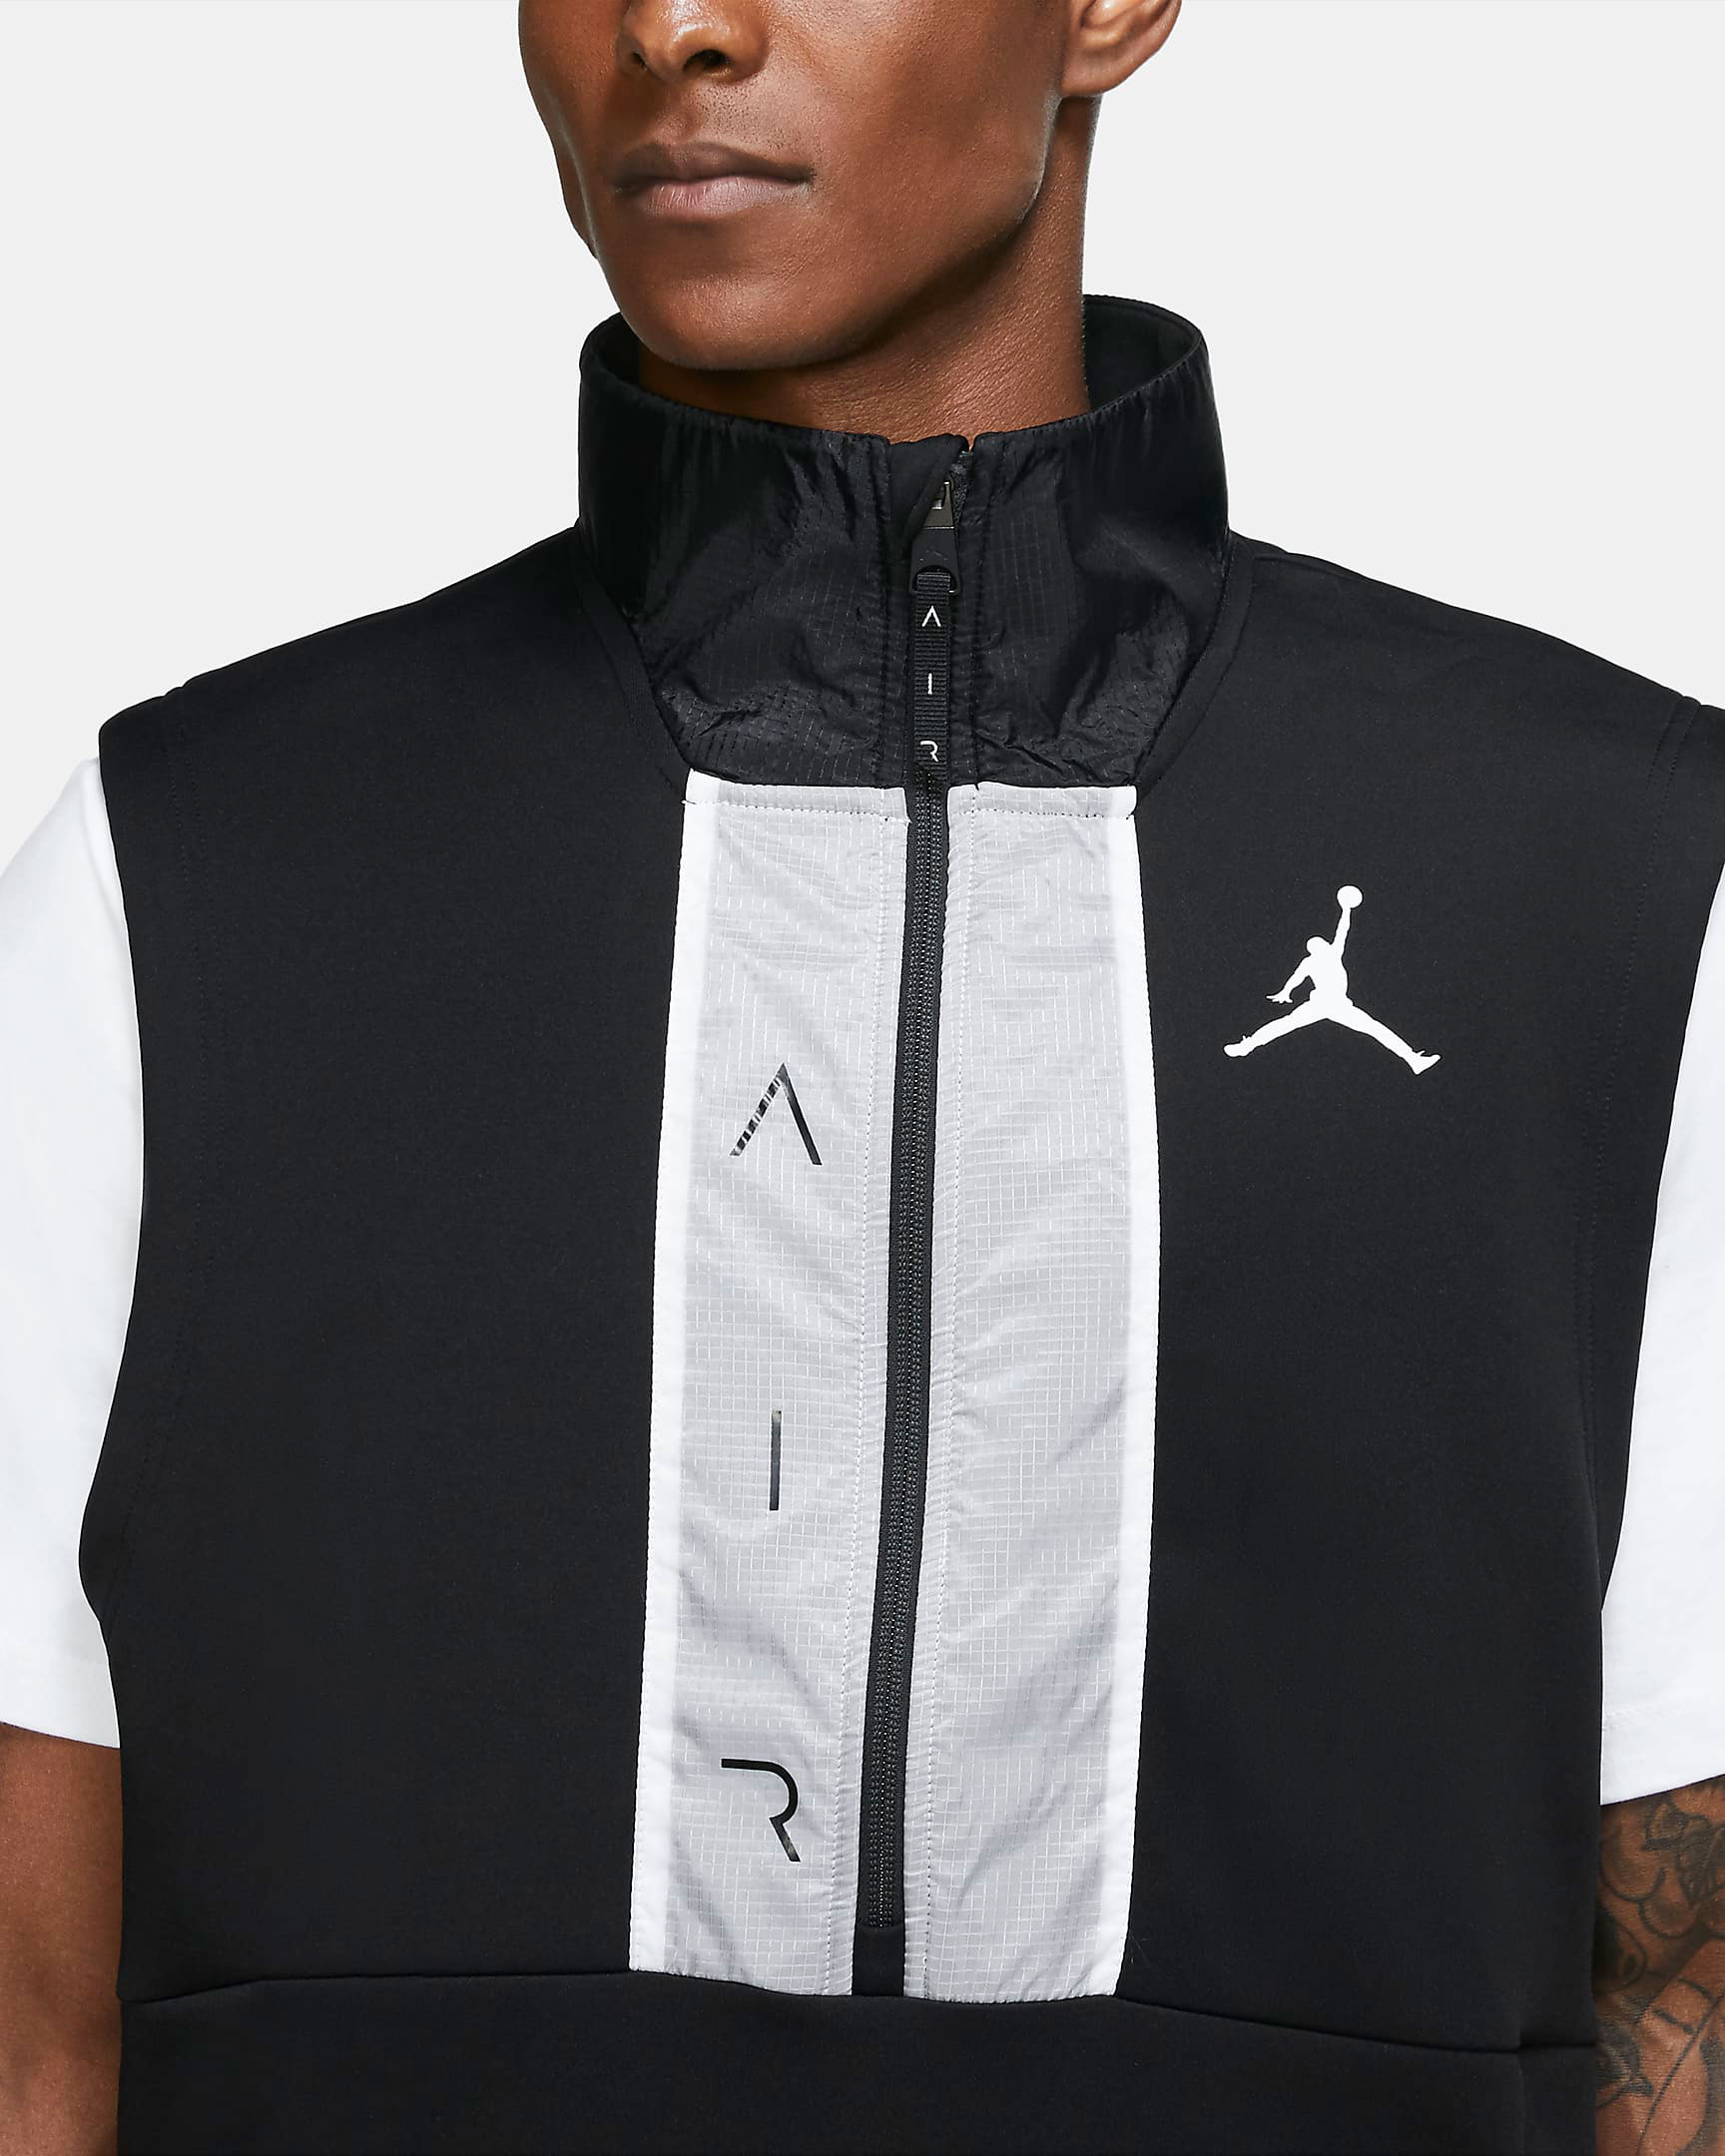 air-jordan-11-jubilee-black-white-jordan-vest-2